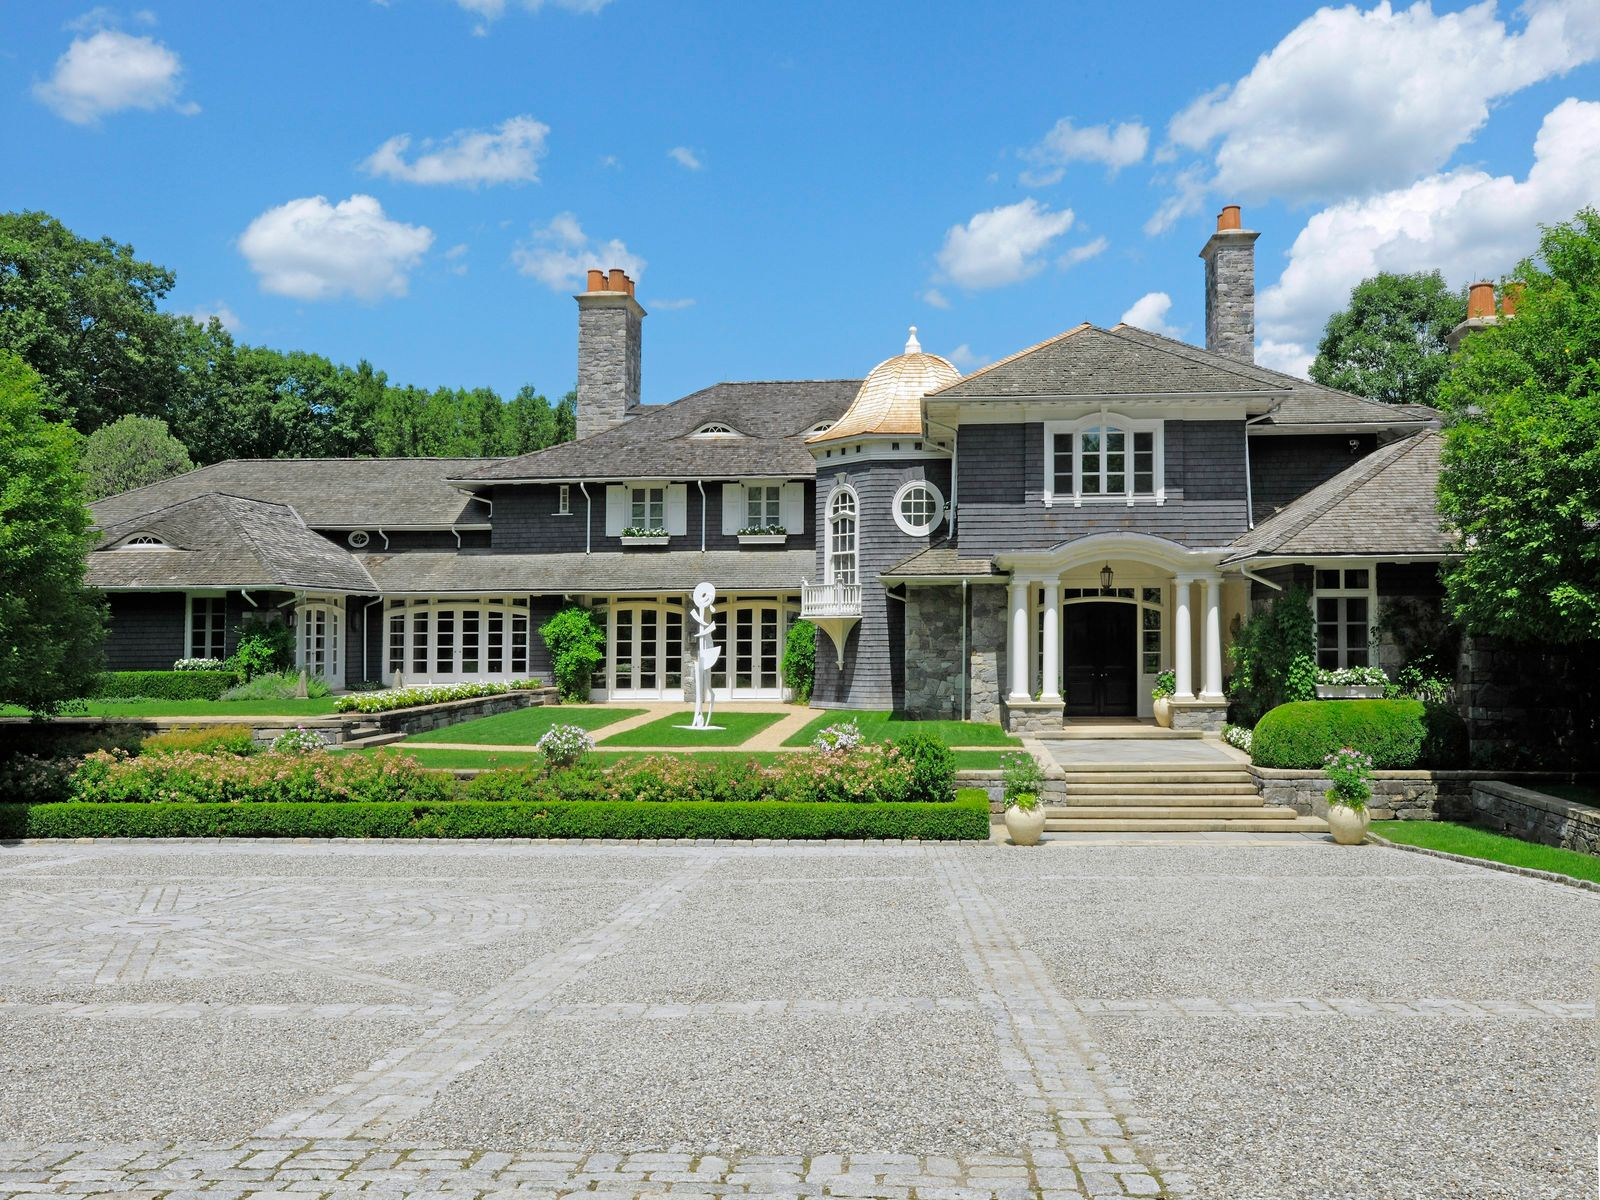 Modern Classic in Conyers Farm, Greenwich CT Single Family Home - Greenwich Real Estate